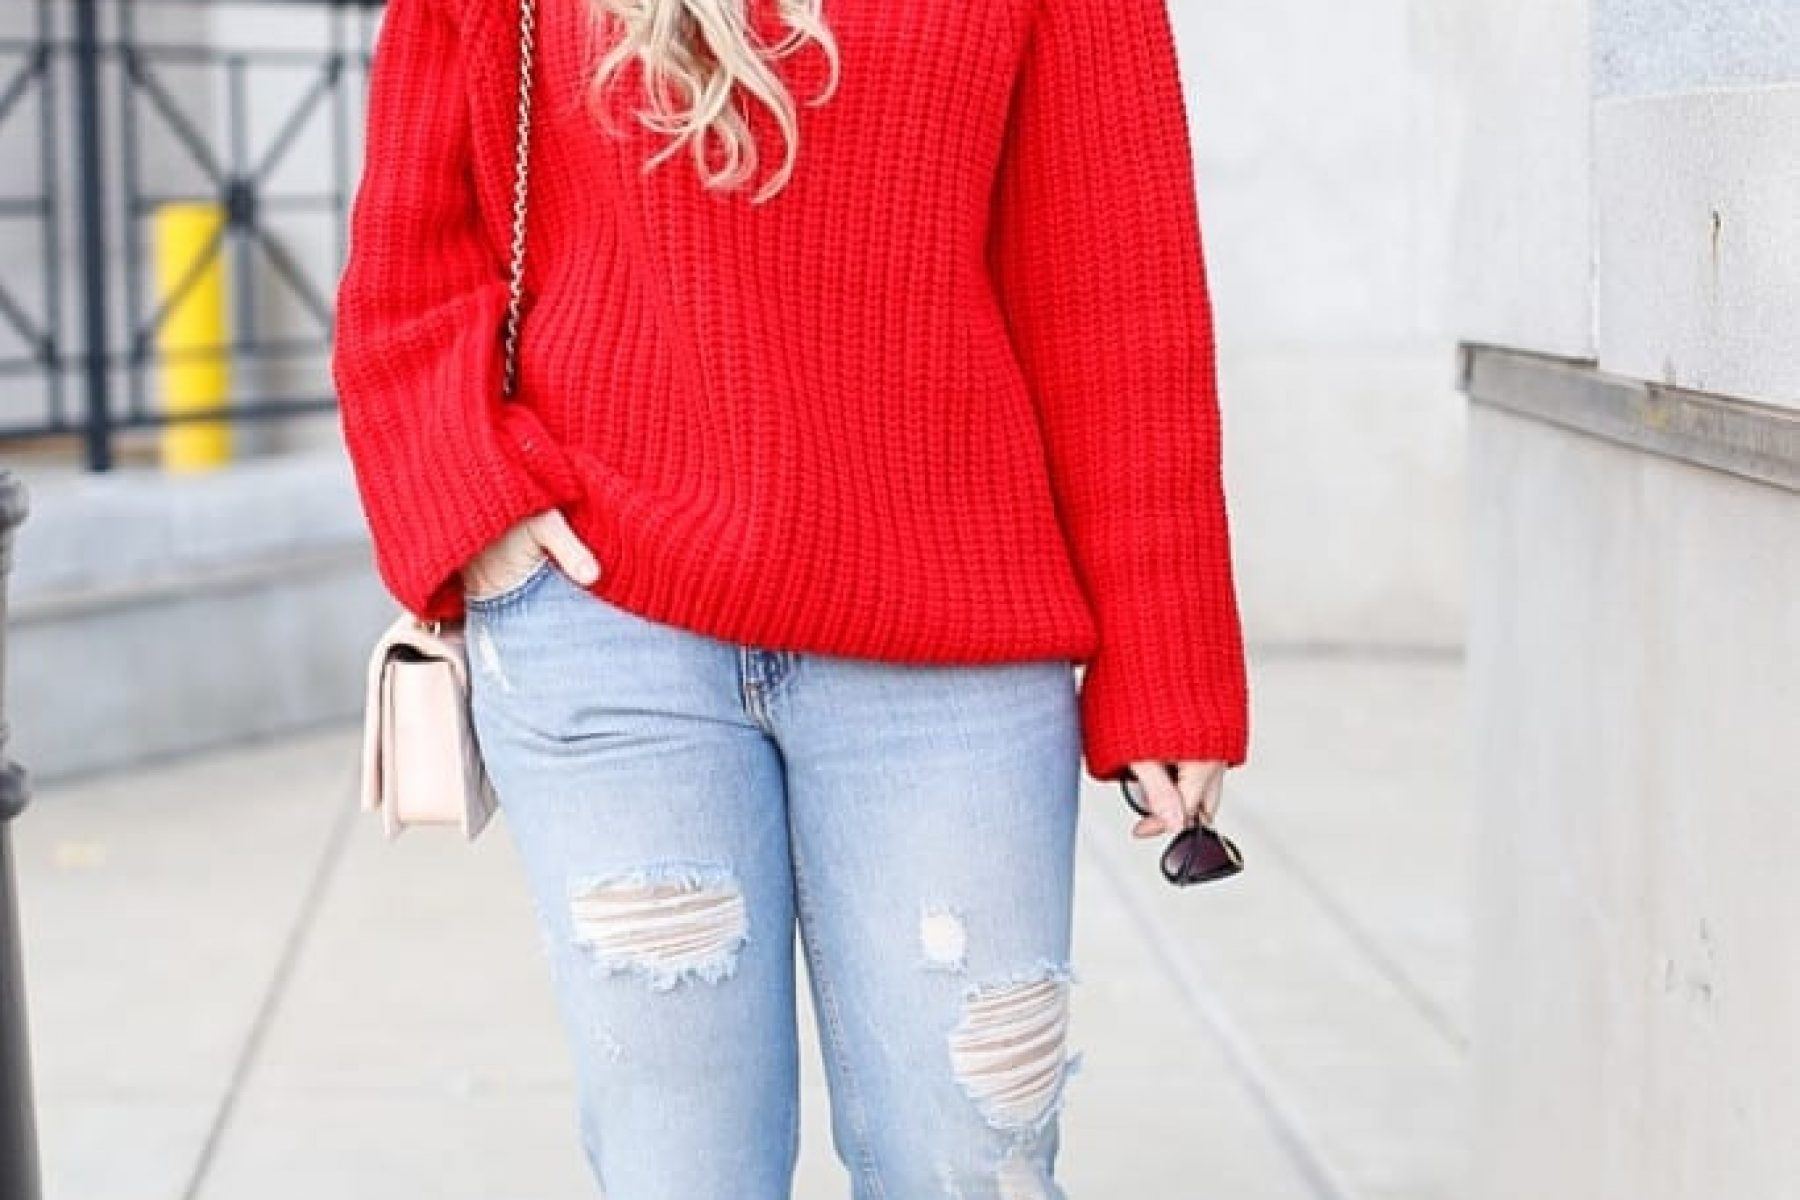 Valentine-Day-Holiday-Look-Cozy-Missguided-Sweater-Free-People-Fashion (9 of 9)